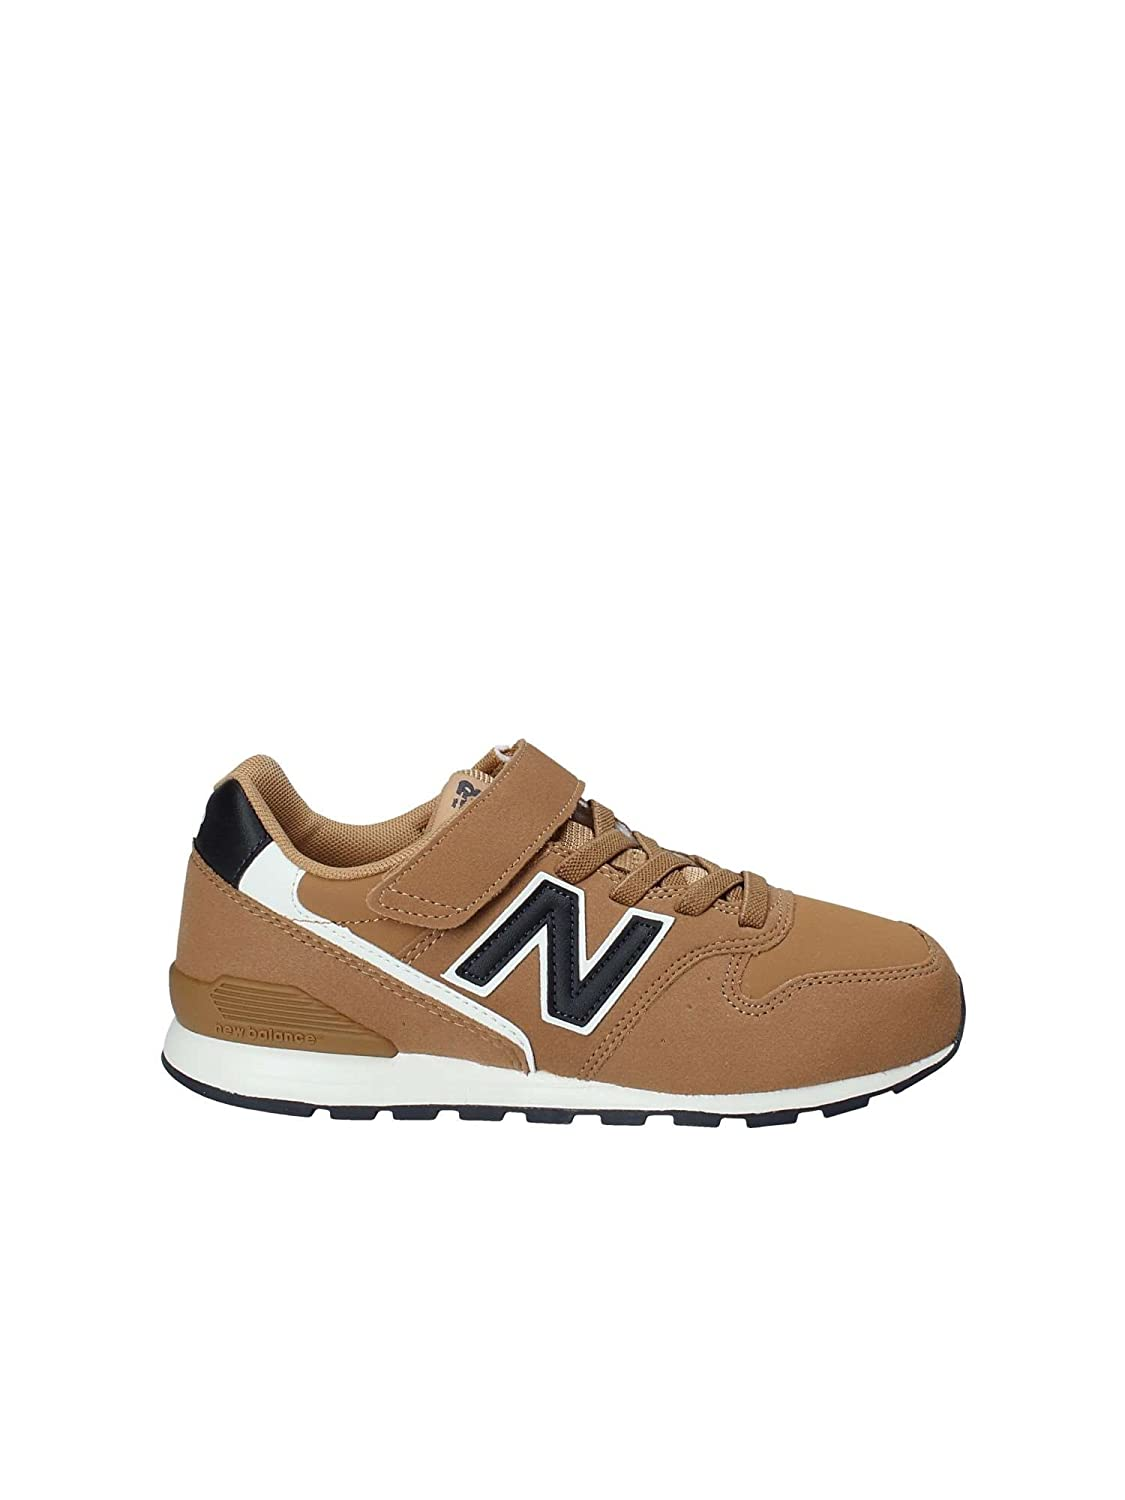 New Balance KV996 Unisex-child Sneakers